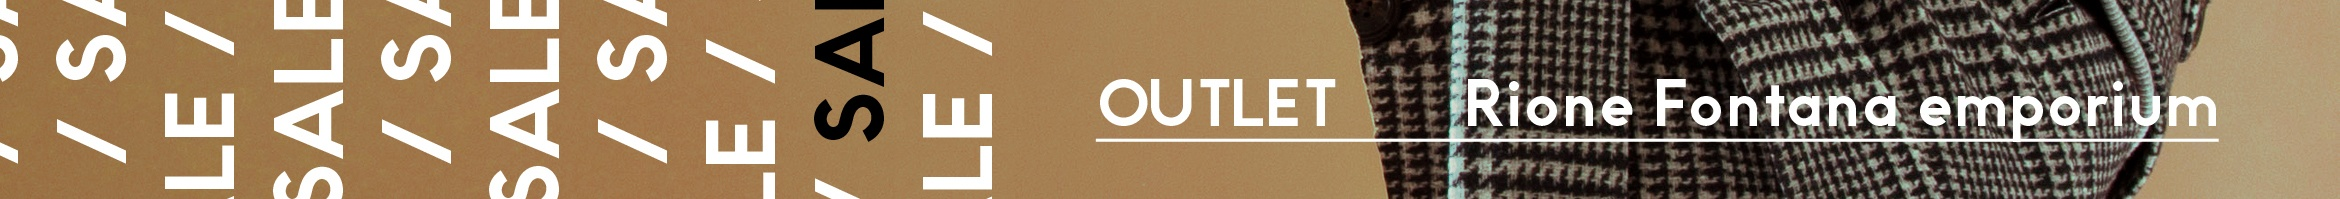 Outlet Online Store - Uomo